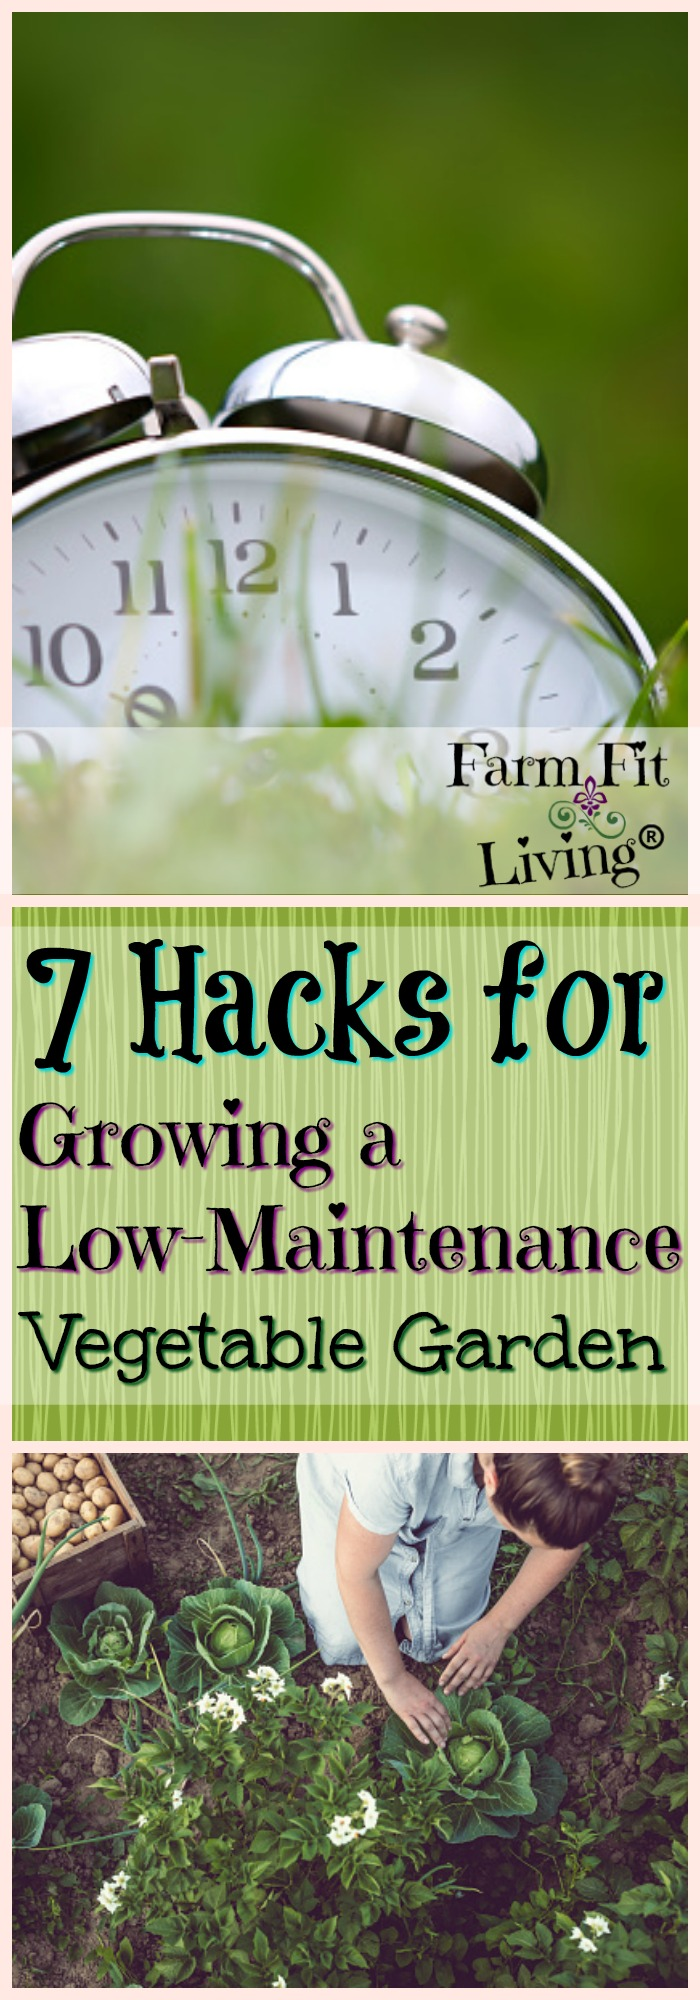 Do you feel like you're too busy to grow a successful garden? Here's 7 hacks for growing a low-maintenance vegetable garden that might help you find success. #vegetablegarden #gardenhacks